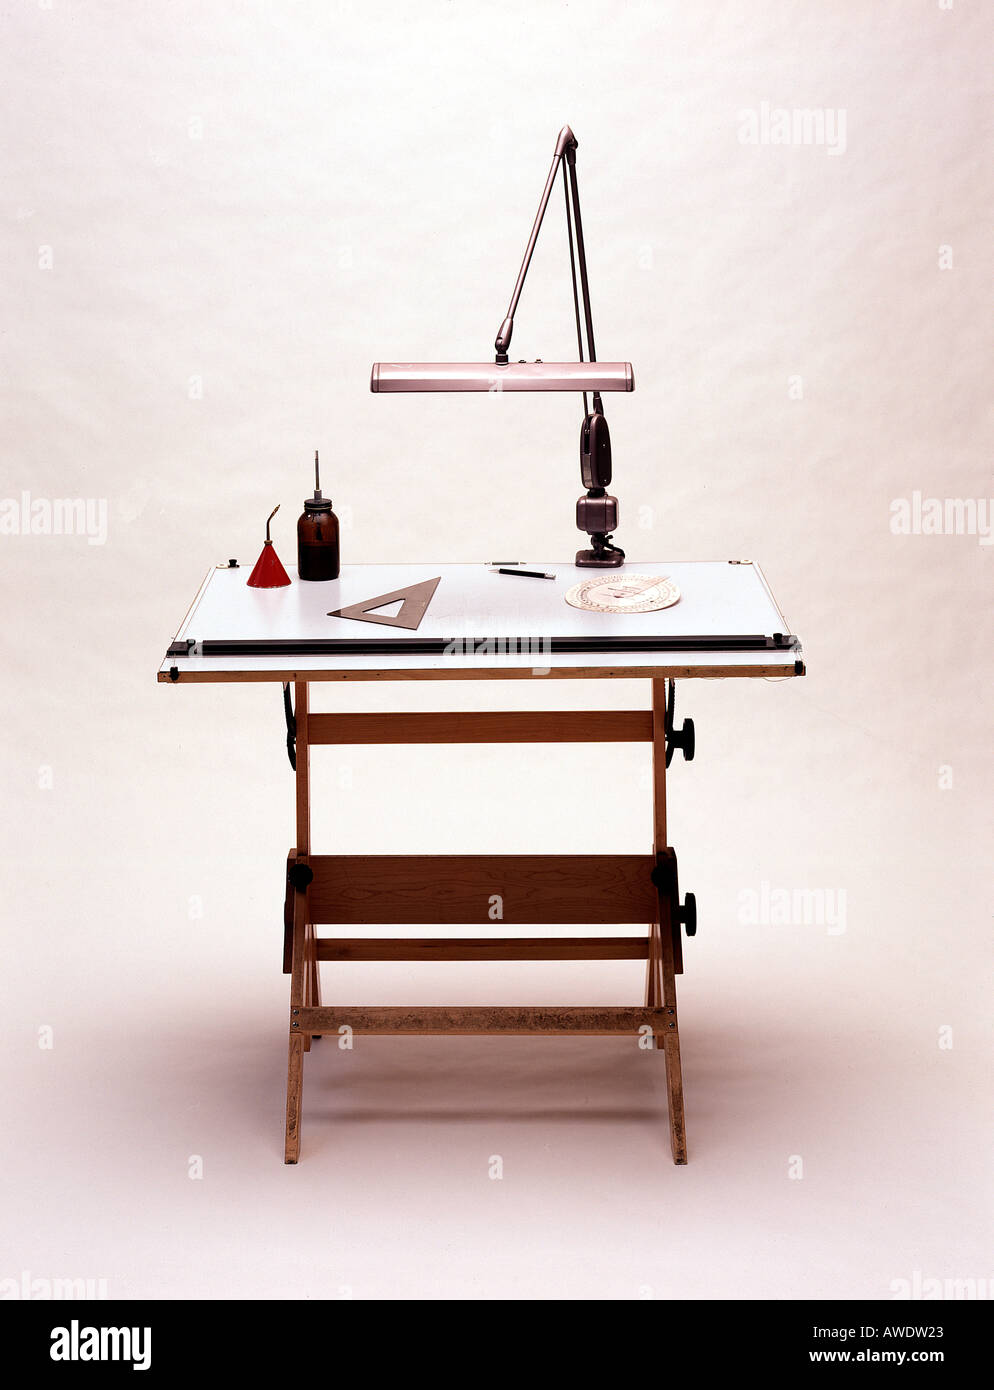 Drafting draftsman architect designer engineer work table lamp drafting draftsman architect designer engineer work table lamp tools triangle graphic arts desk lamp aloadofball